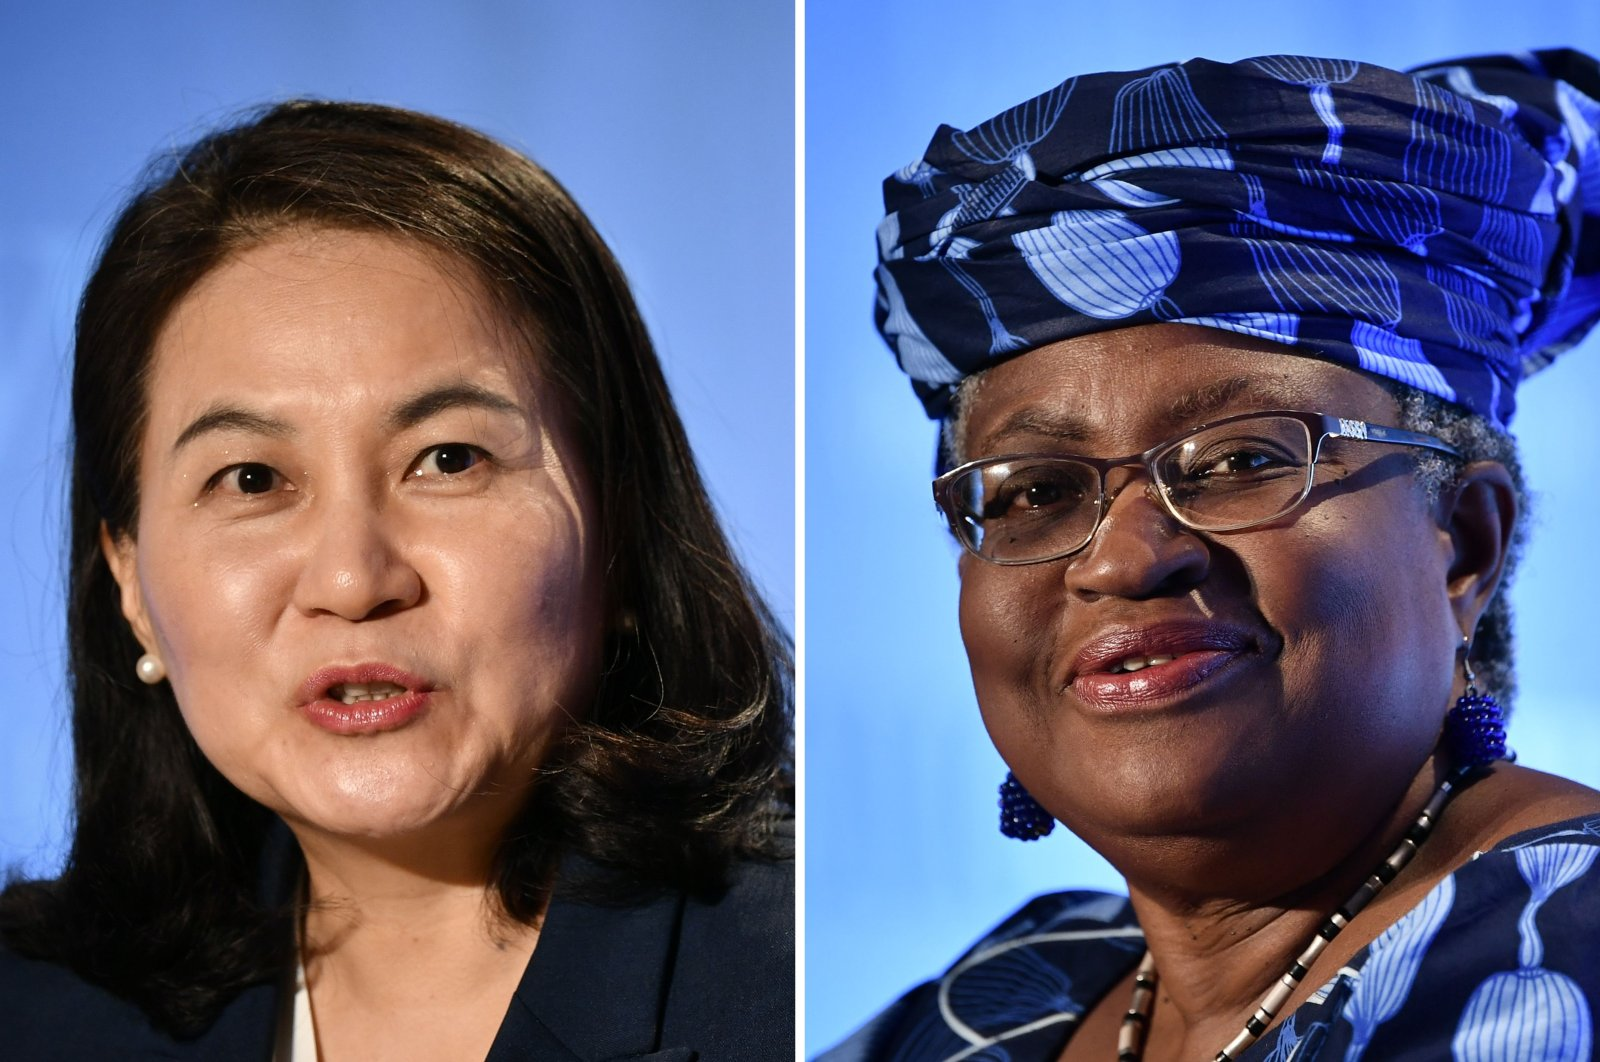 This combination of file photos created on Oct. 7, 2020, shows South Korean Trade Minister Yoo Myung-hee (L) in Geneva, Switzerland, on July 16, 2020; and Nigerian former Foreign and Finance Minister Ngozi Okonjo-Iweala (R) in Geneva, Switzerland, July 15, 2020, as they give news conferences as part of their application process to head the World Trade Organization as director general. (AFP Photo)